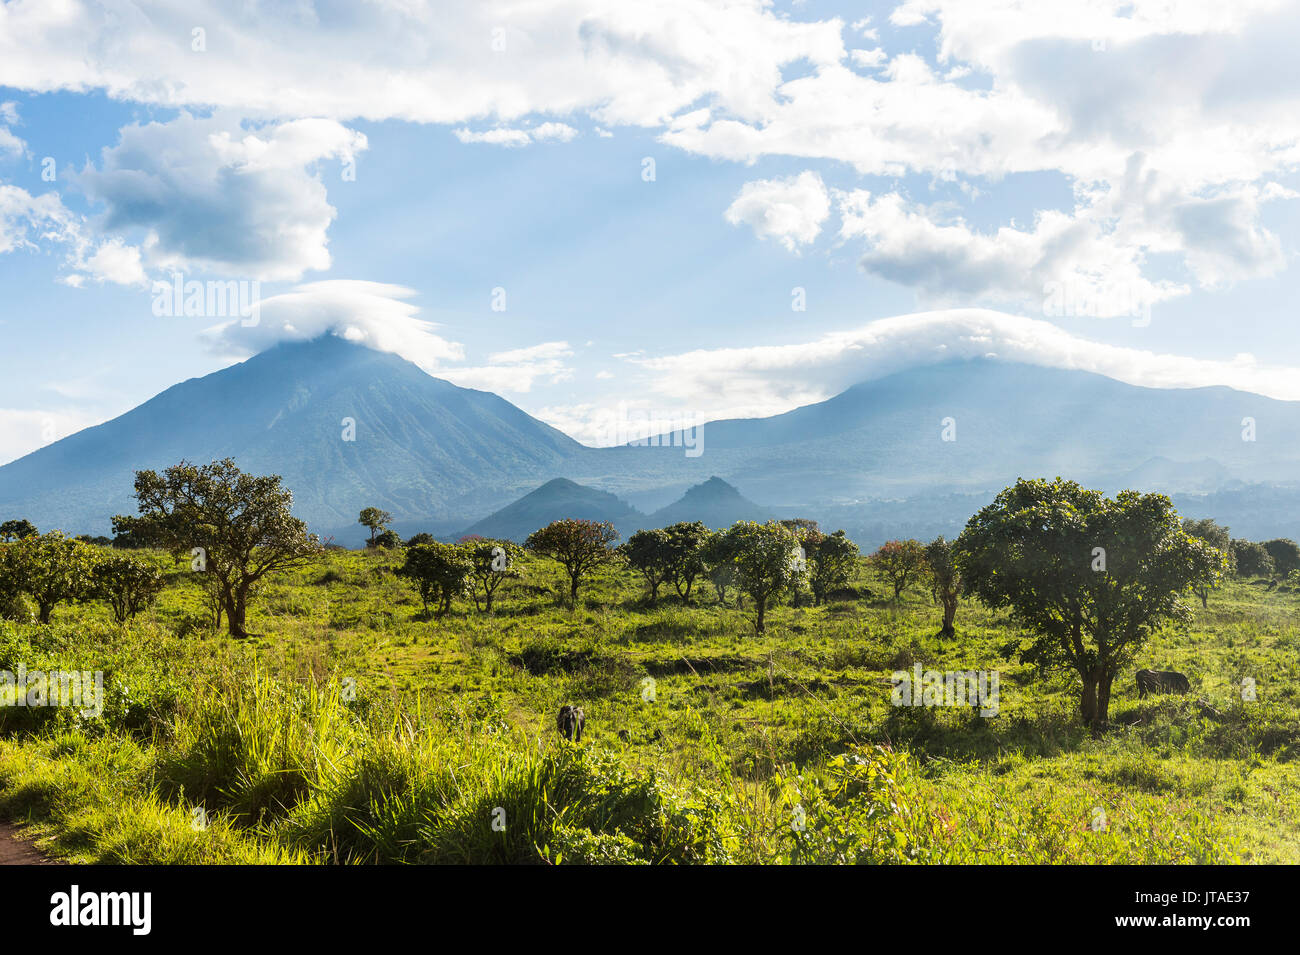 The volcanic mountain chain of the Virunga National Park, UNESCO World Heritage Site, Democratic Republic of the Congo, Africa - Stock Image